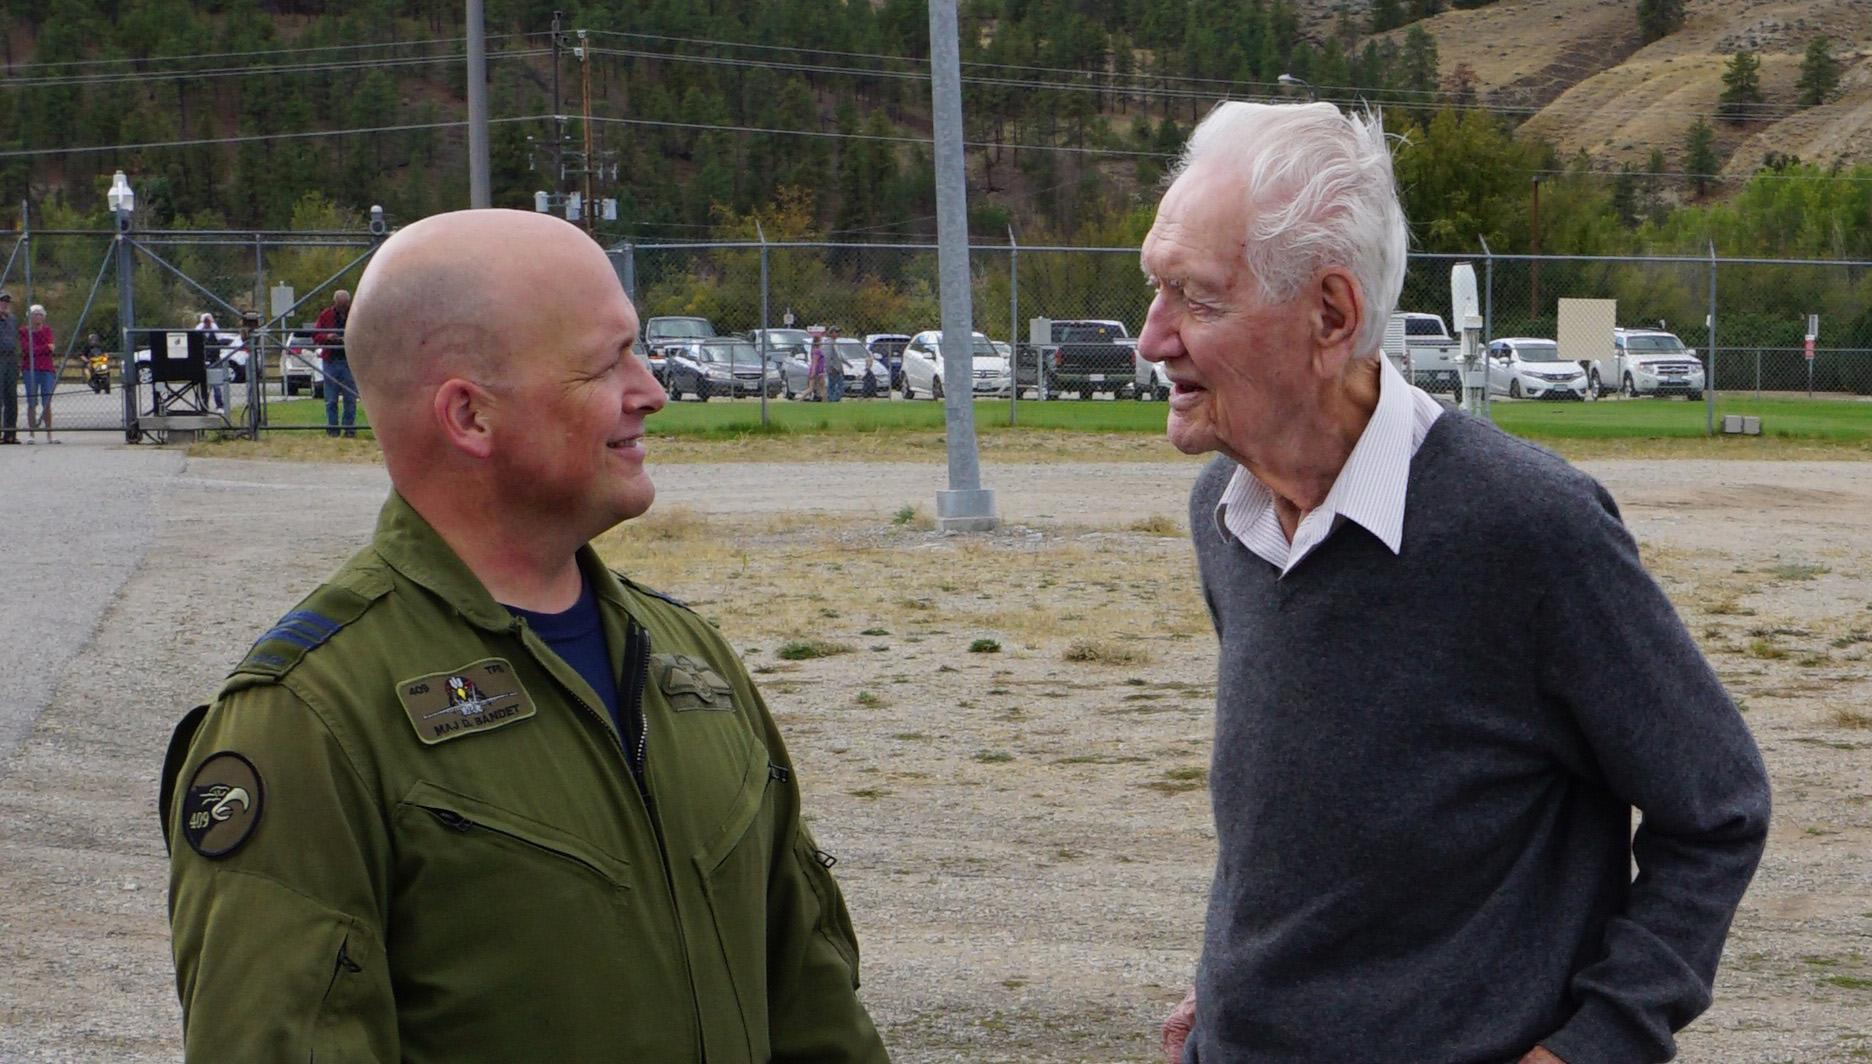 Major Denis Bandet, the deputy commanding officer of 409 Tactical Fighter Squadron, chats with Squadron Leader (retired) John Hart, Canada's last known surviving Battle of Britain pilot, at the Penticton Regional Airport in British Columbia. PHOTO: Submitted